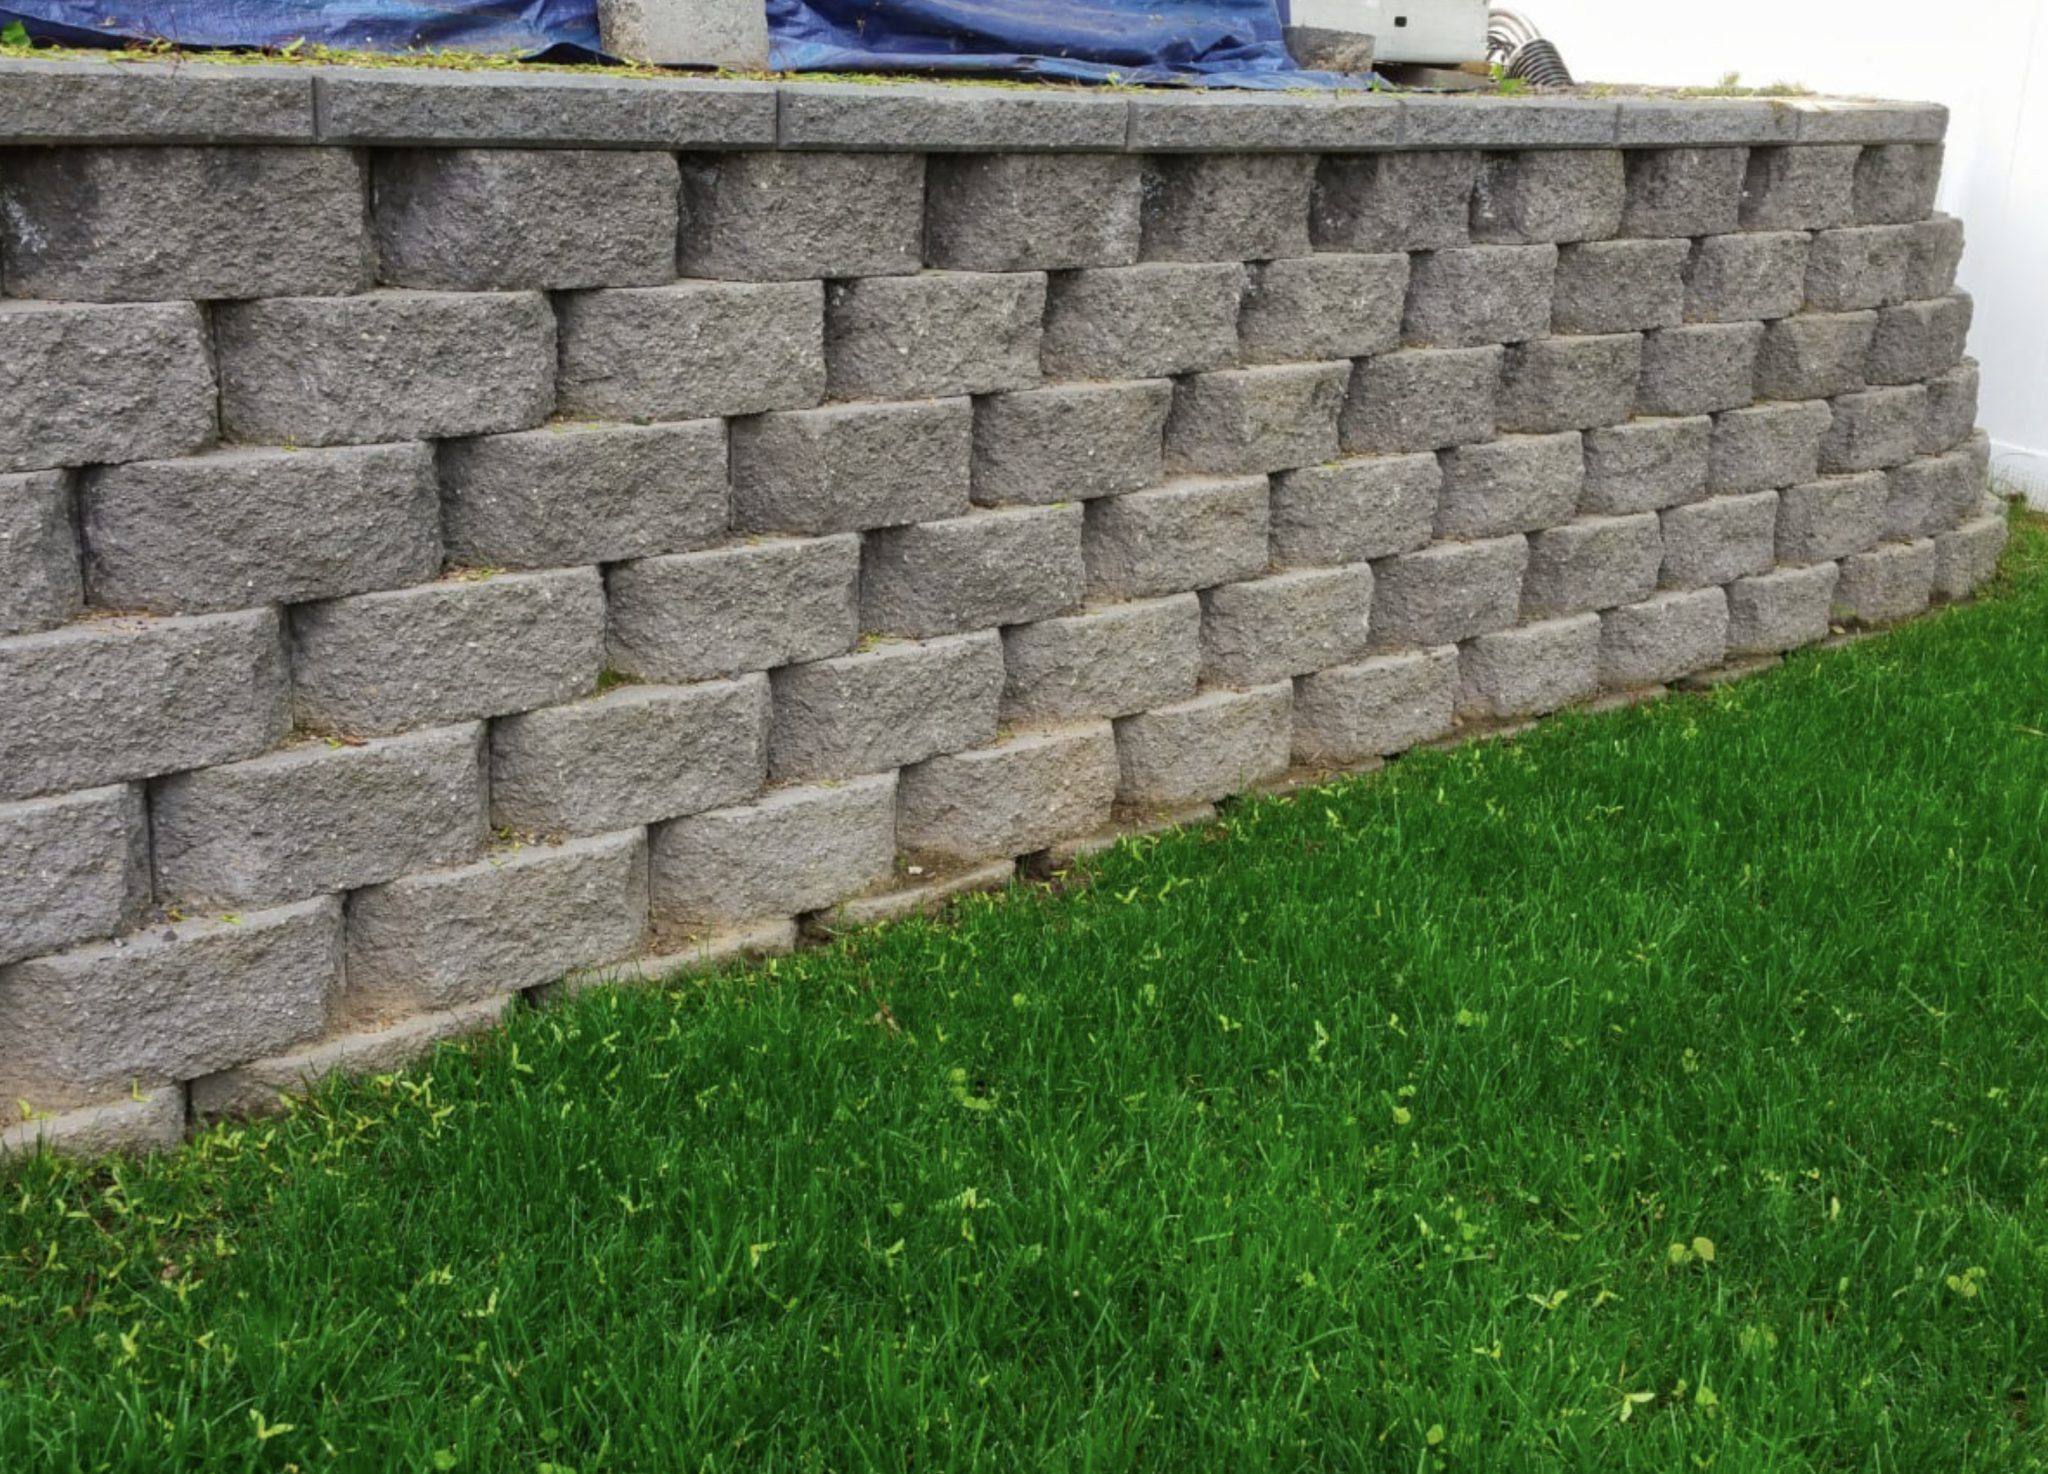 this image shows retaining walls in Concord, California